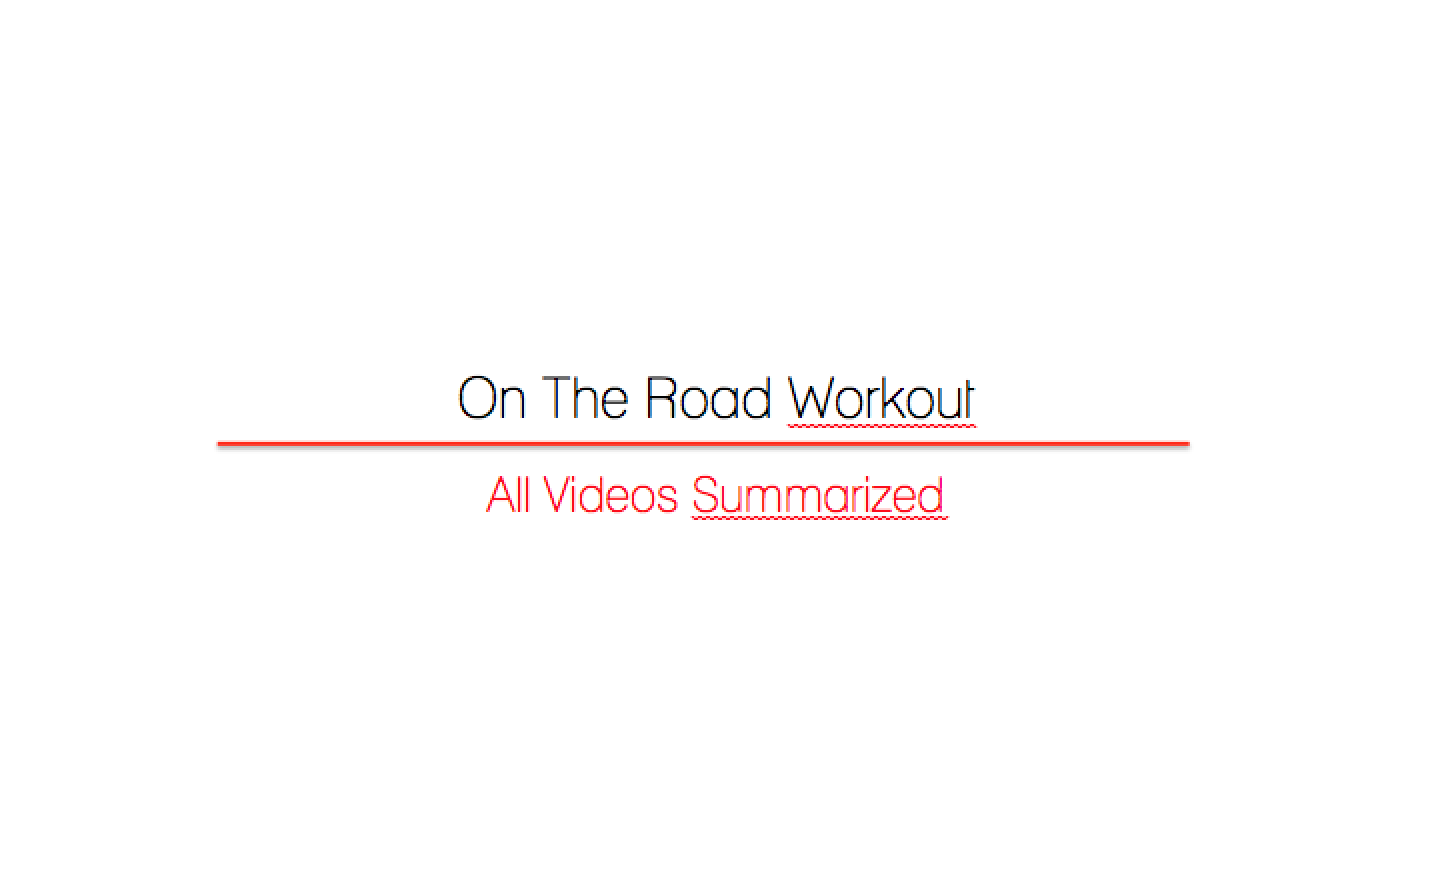 On The Road Workout